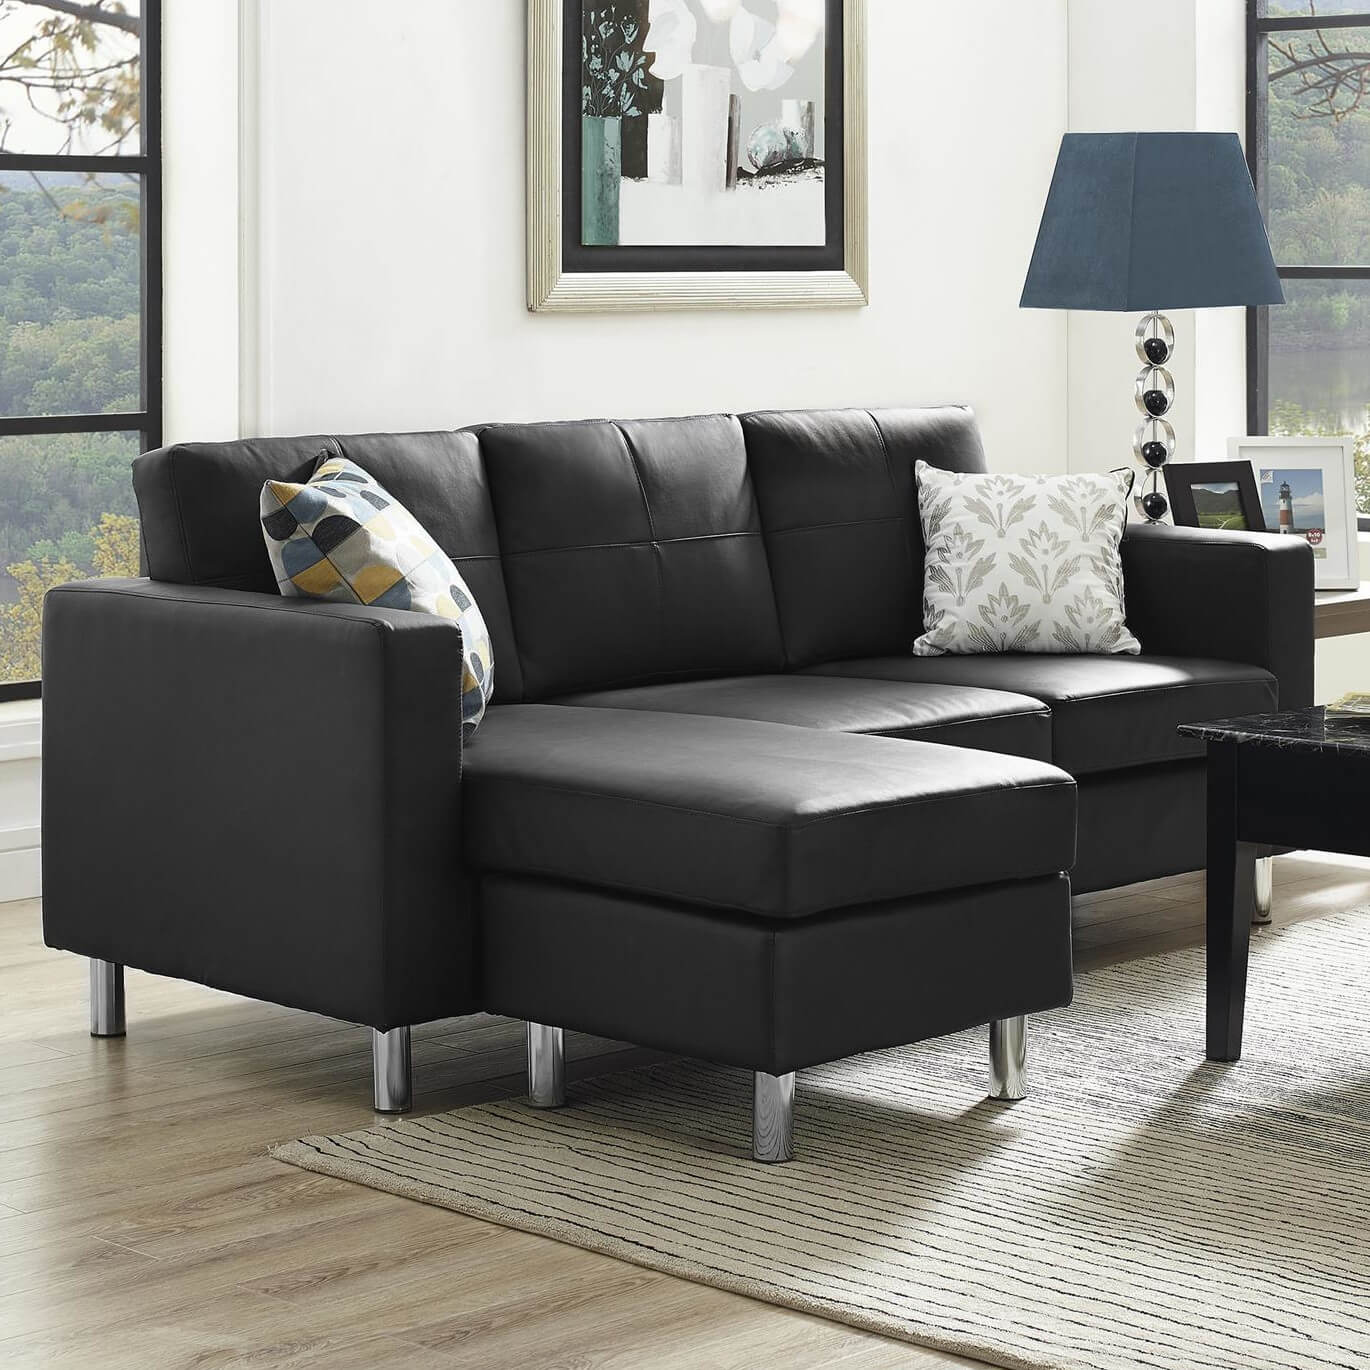 Cheap Sectional Sofa 13 Cheap Sectional Sofas Under 500 For 2019